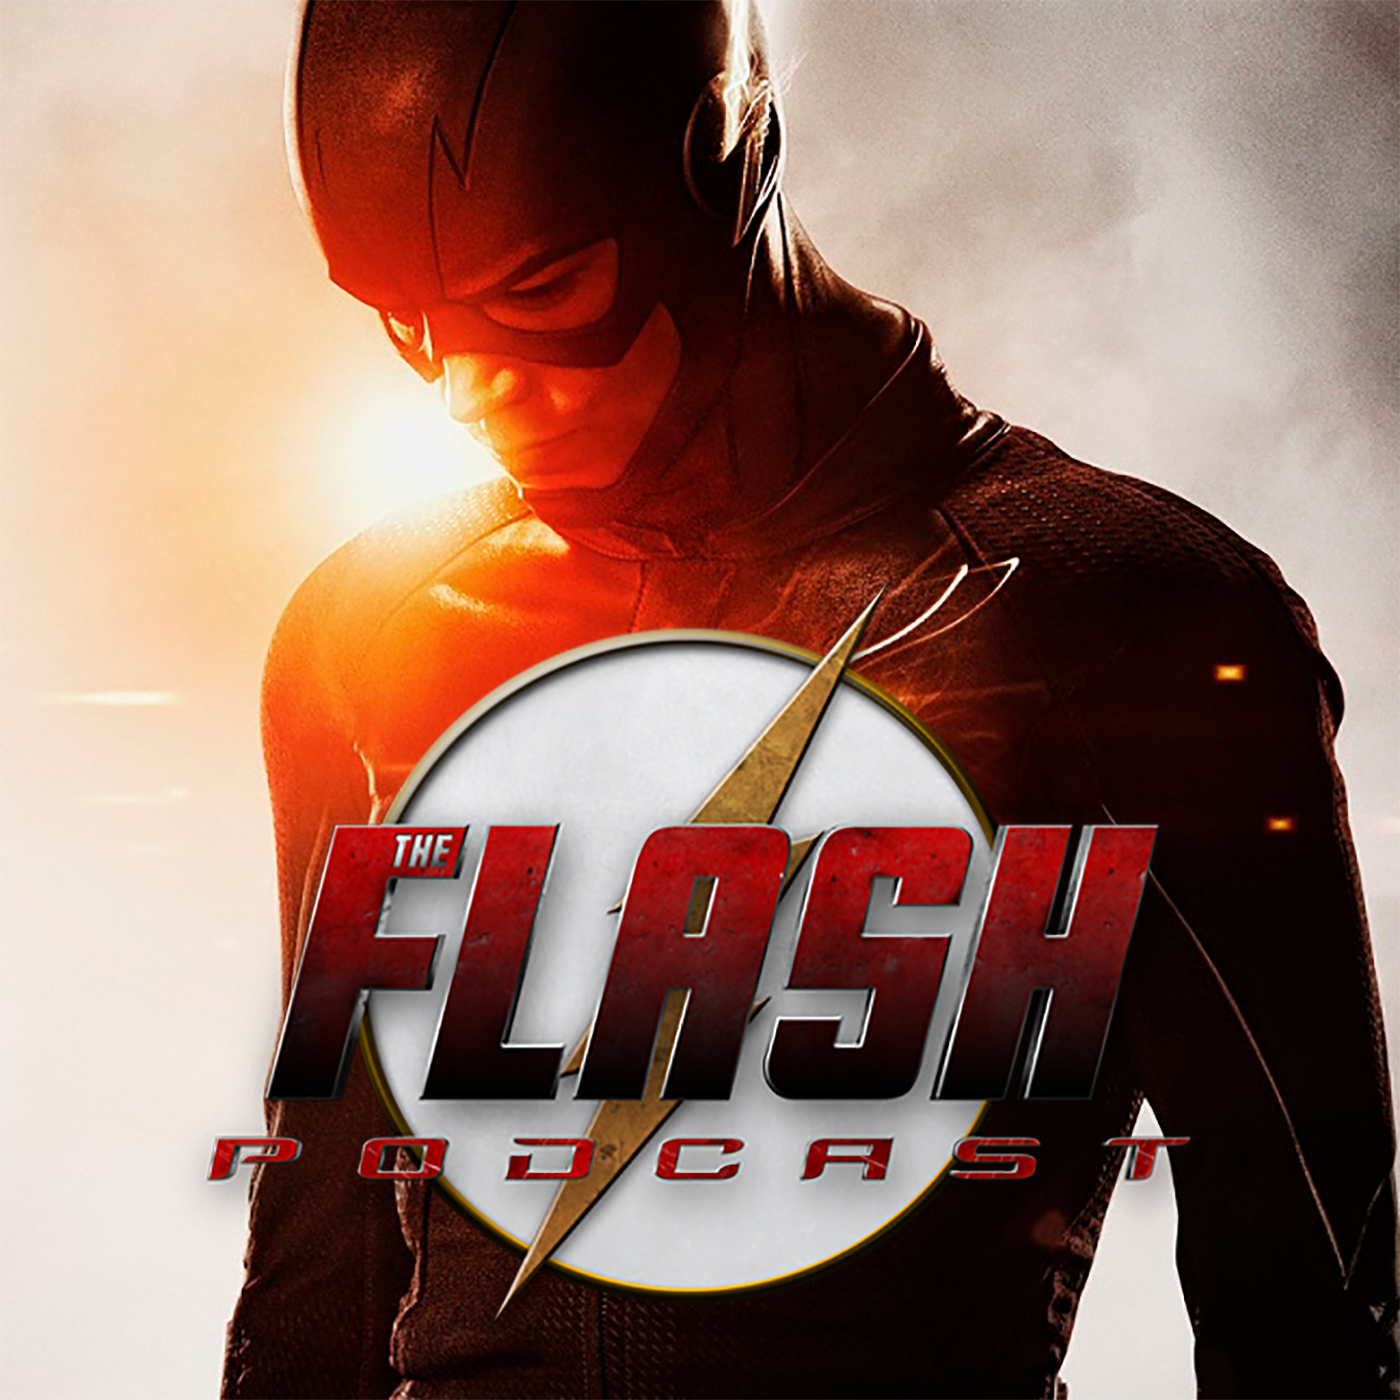 The Flash Podcast Season 2 – Episode 4: The Fury of Firestorm